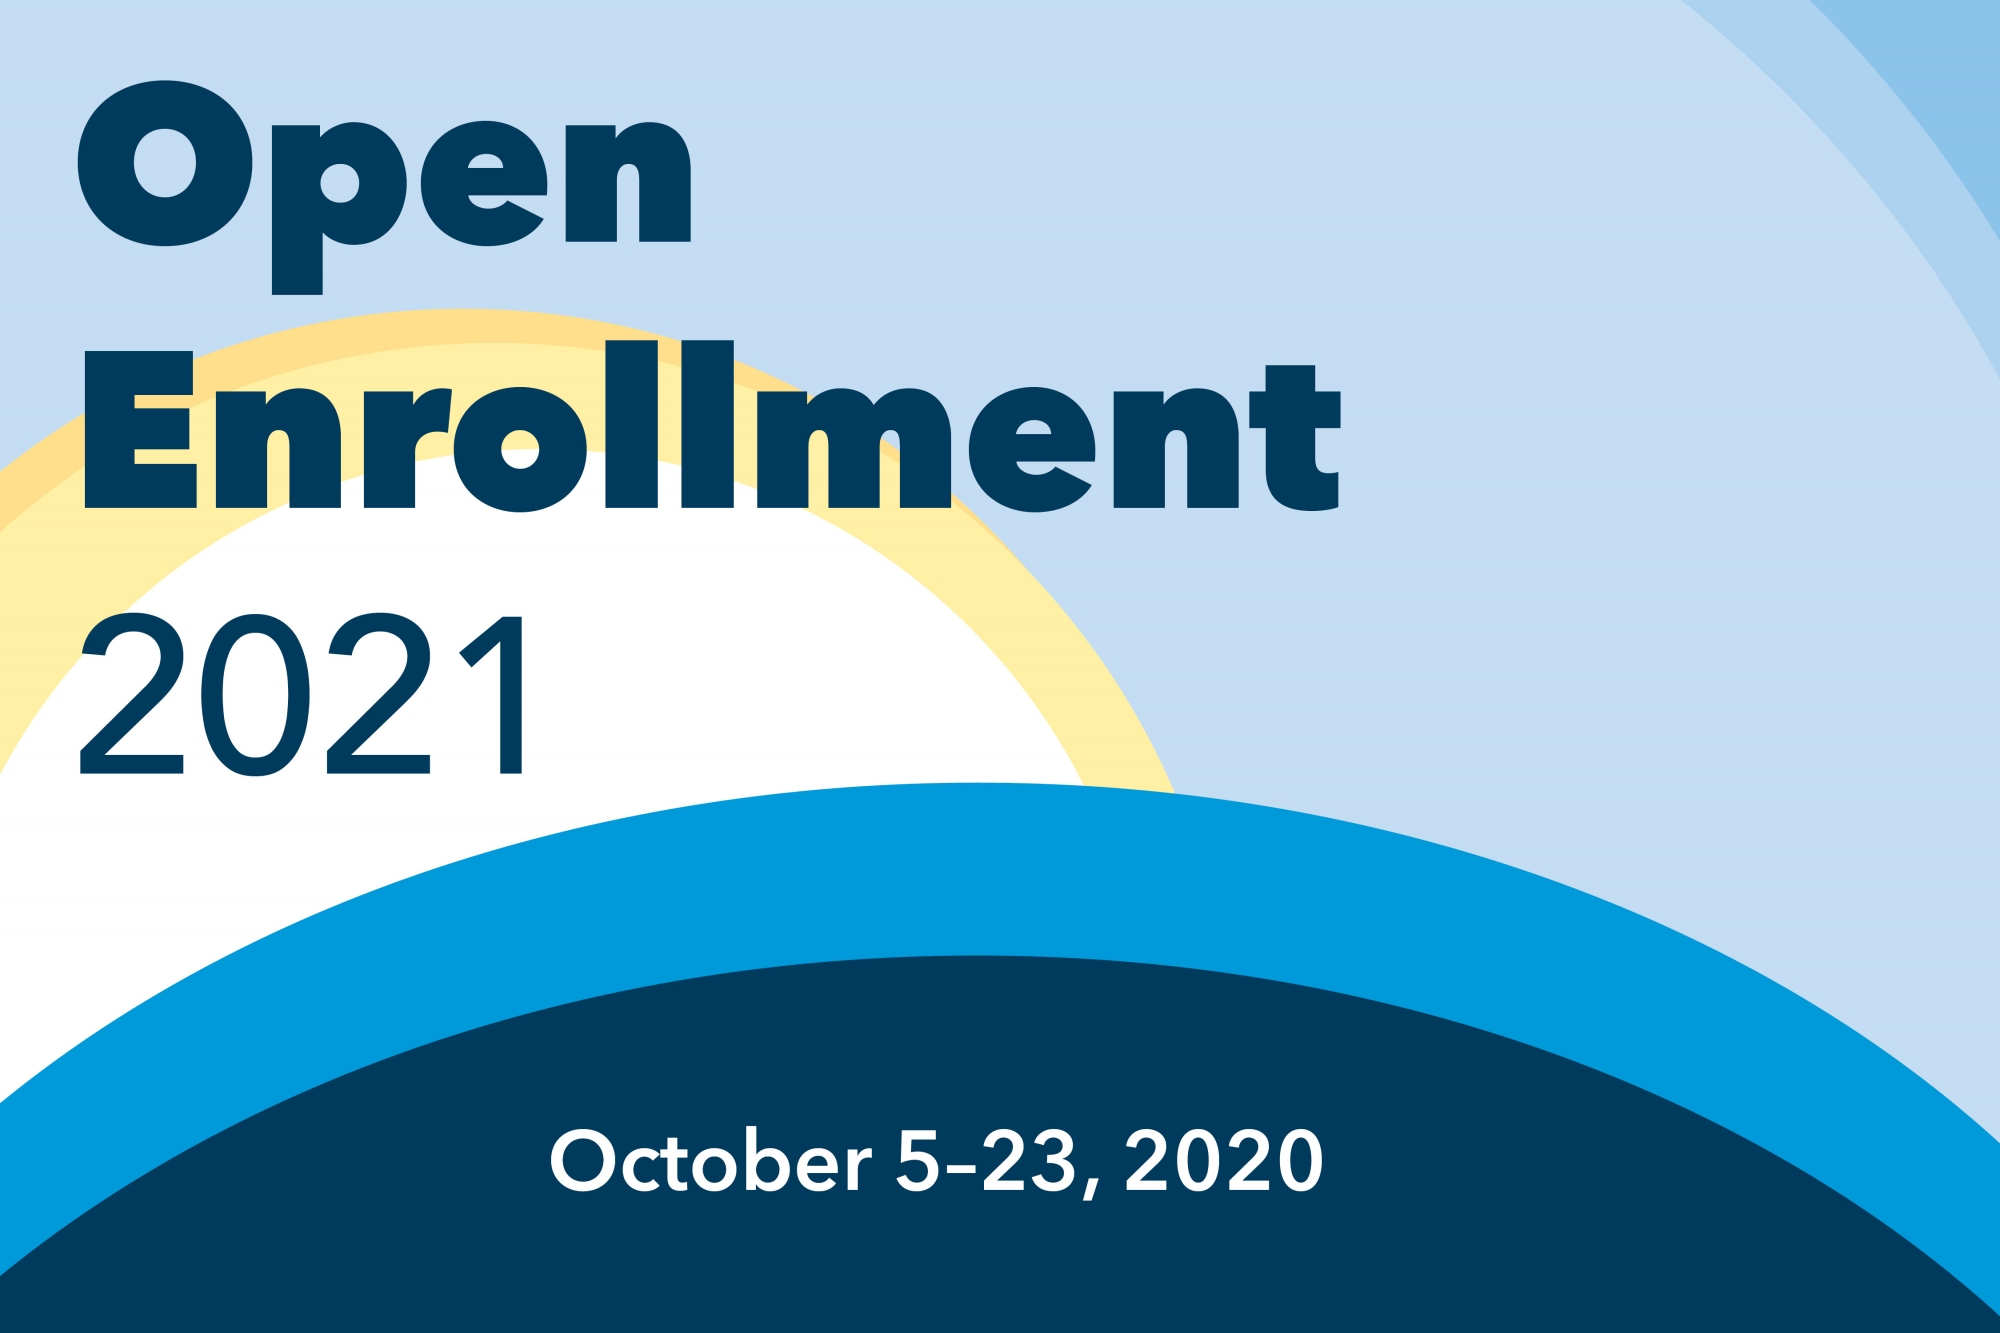 Blue sky with yellow sun says 2021 Open Enrollment